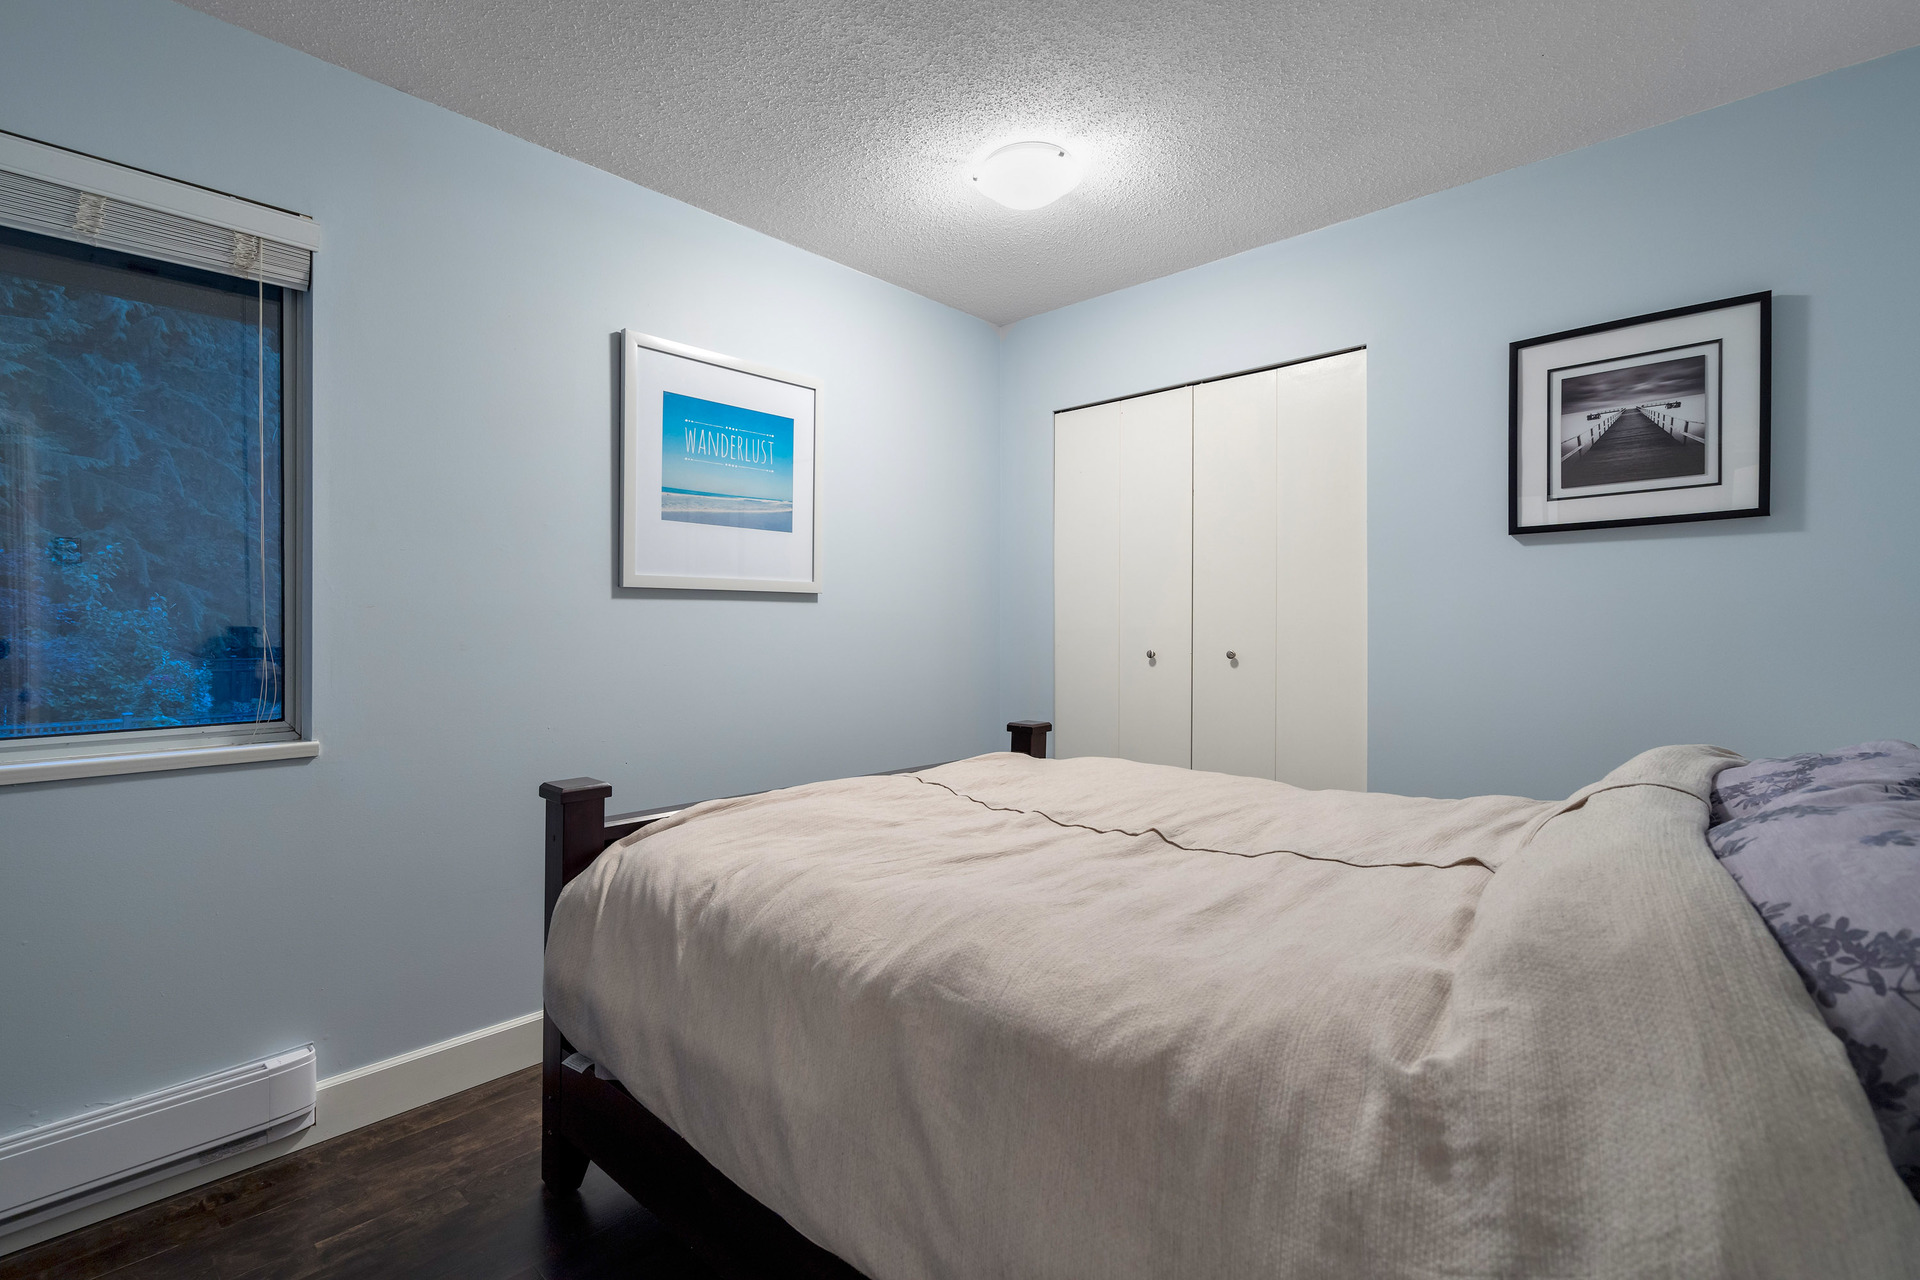 47e5c61 at 4753 Woodrow Crescent, Lynn Valley, North Vancouver